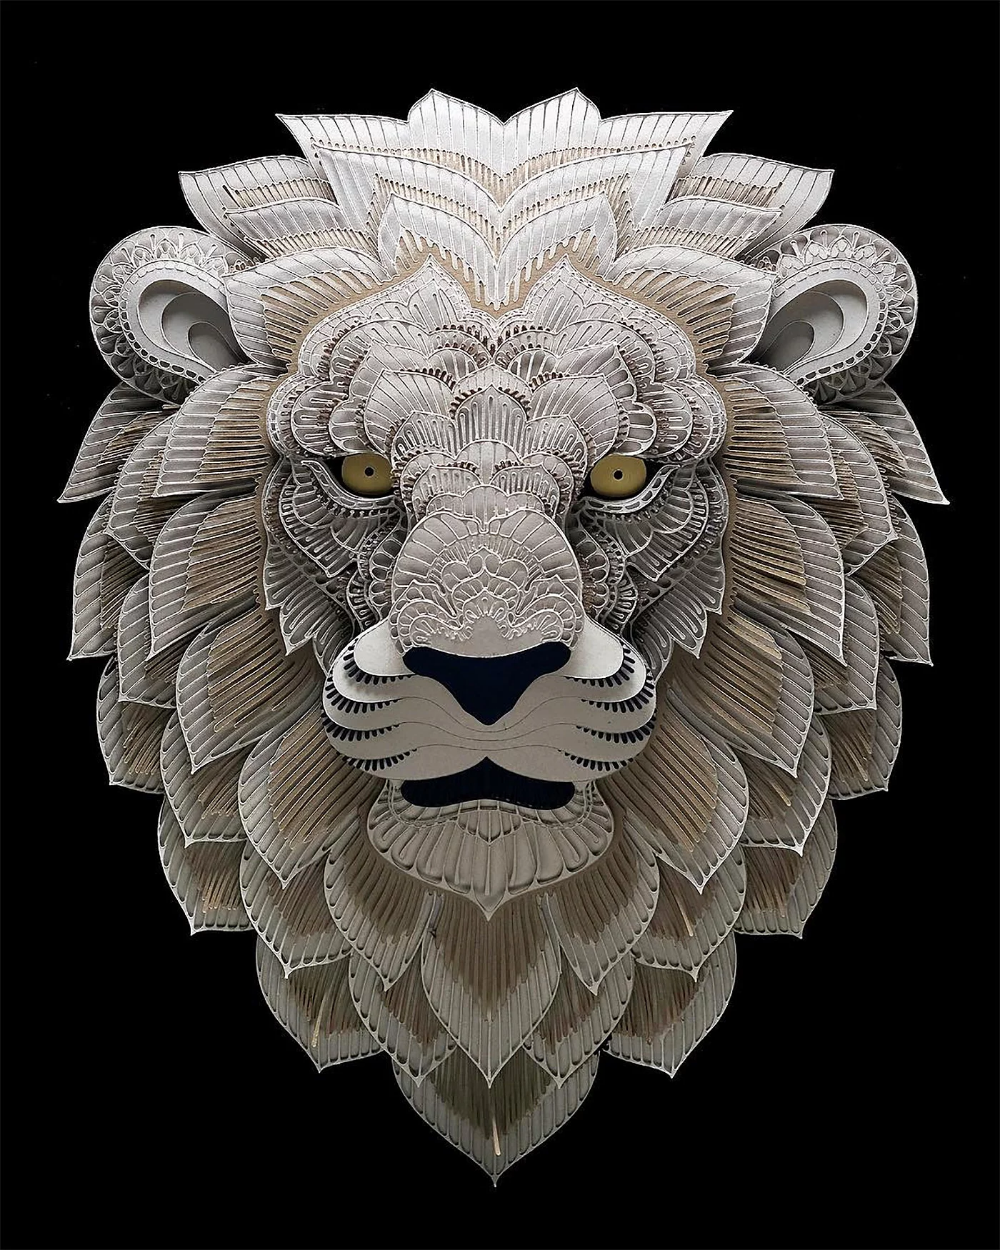 Amazing Layered Animal Portraits by Patrick Cabral